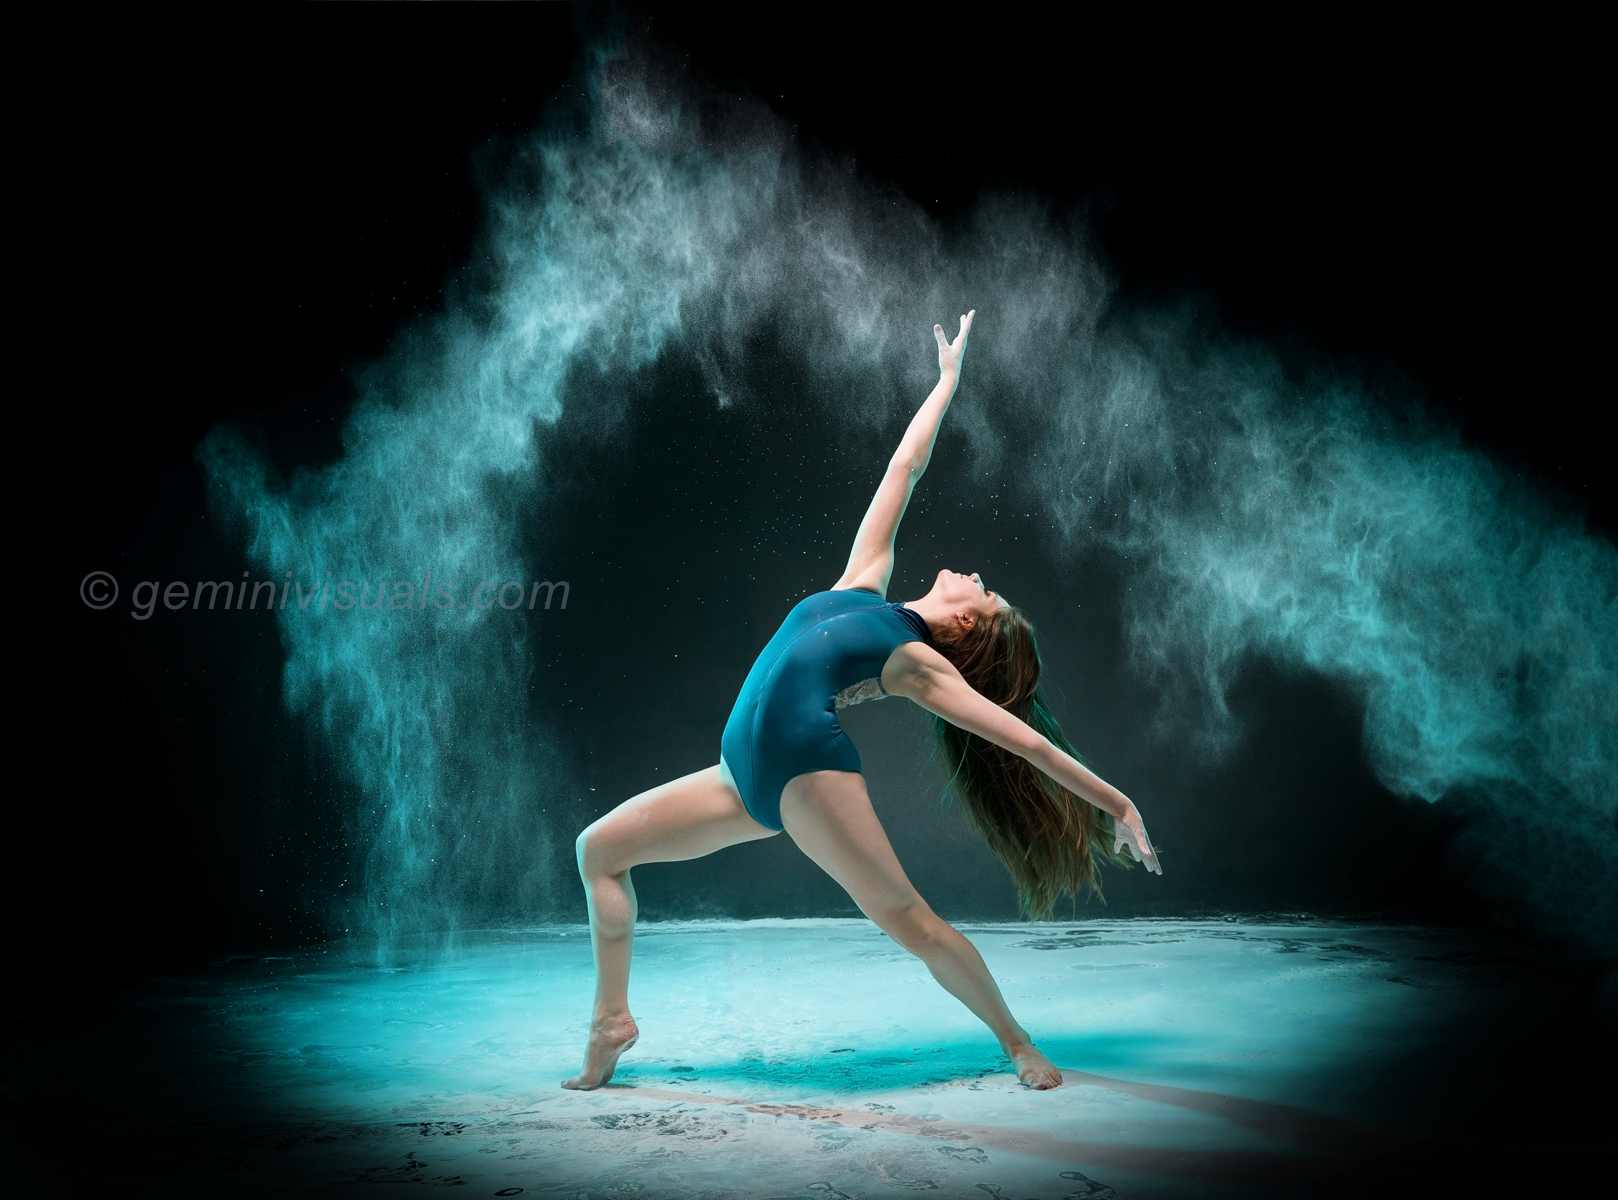 creative dance photos, dance image, creative photography, dance photography